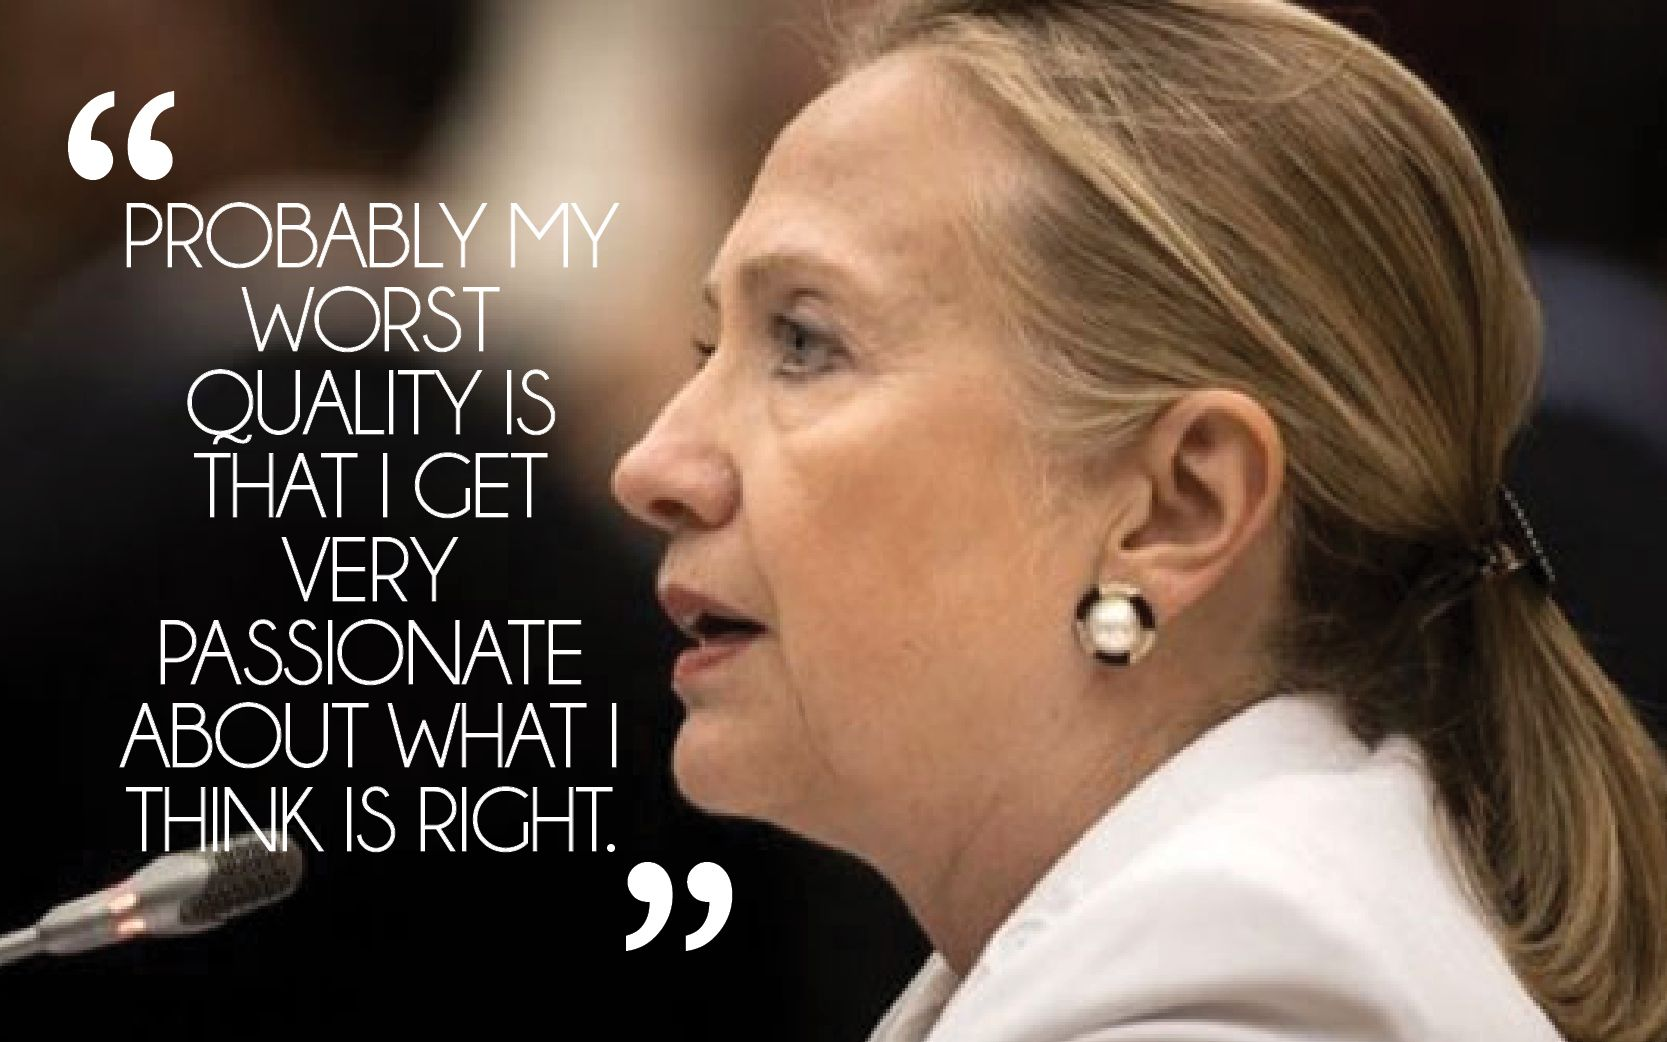 Hillary Clinton Quote Such A Good Quote From Clintonshow Your Support For Her For For